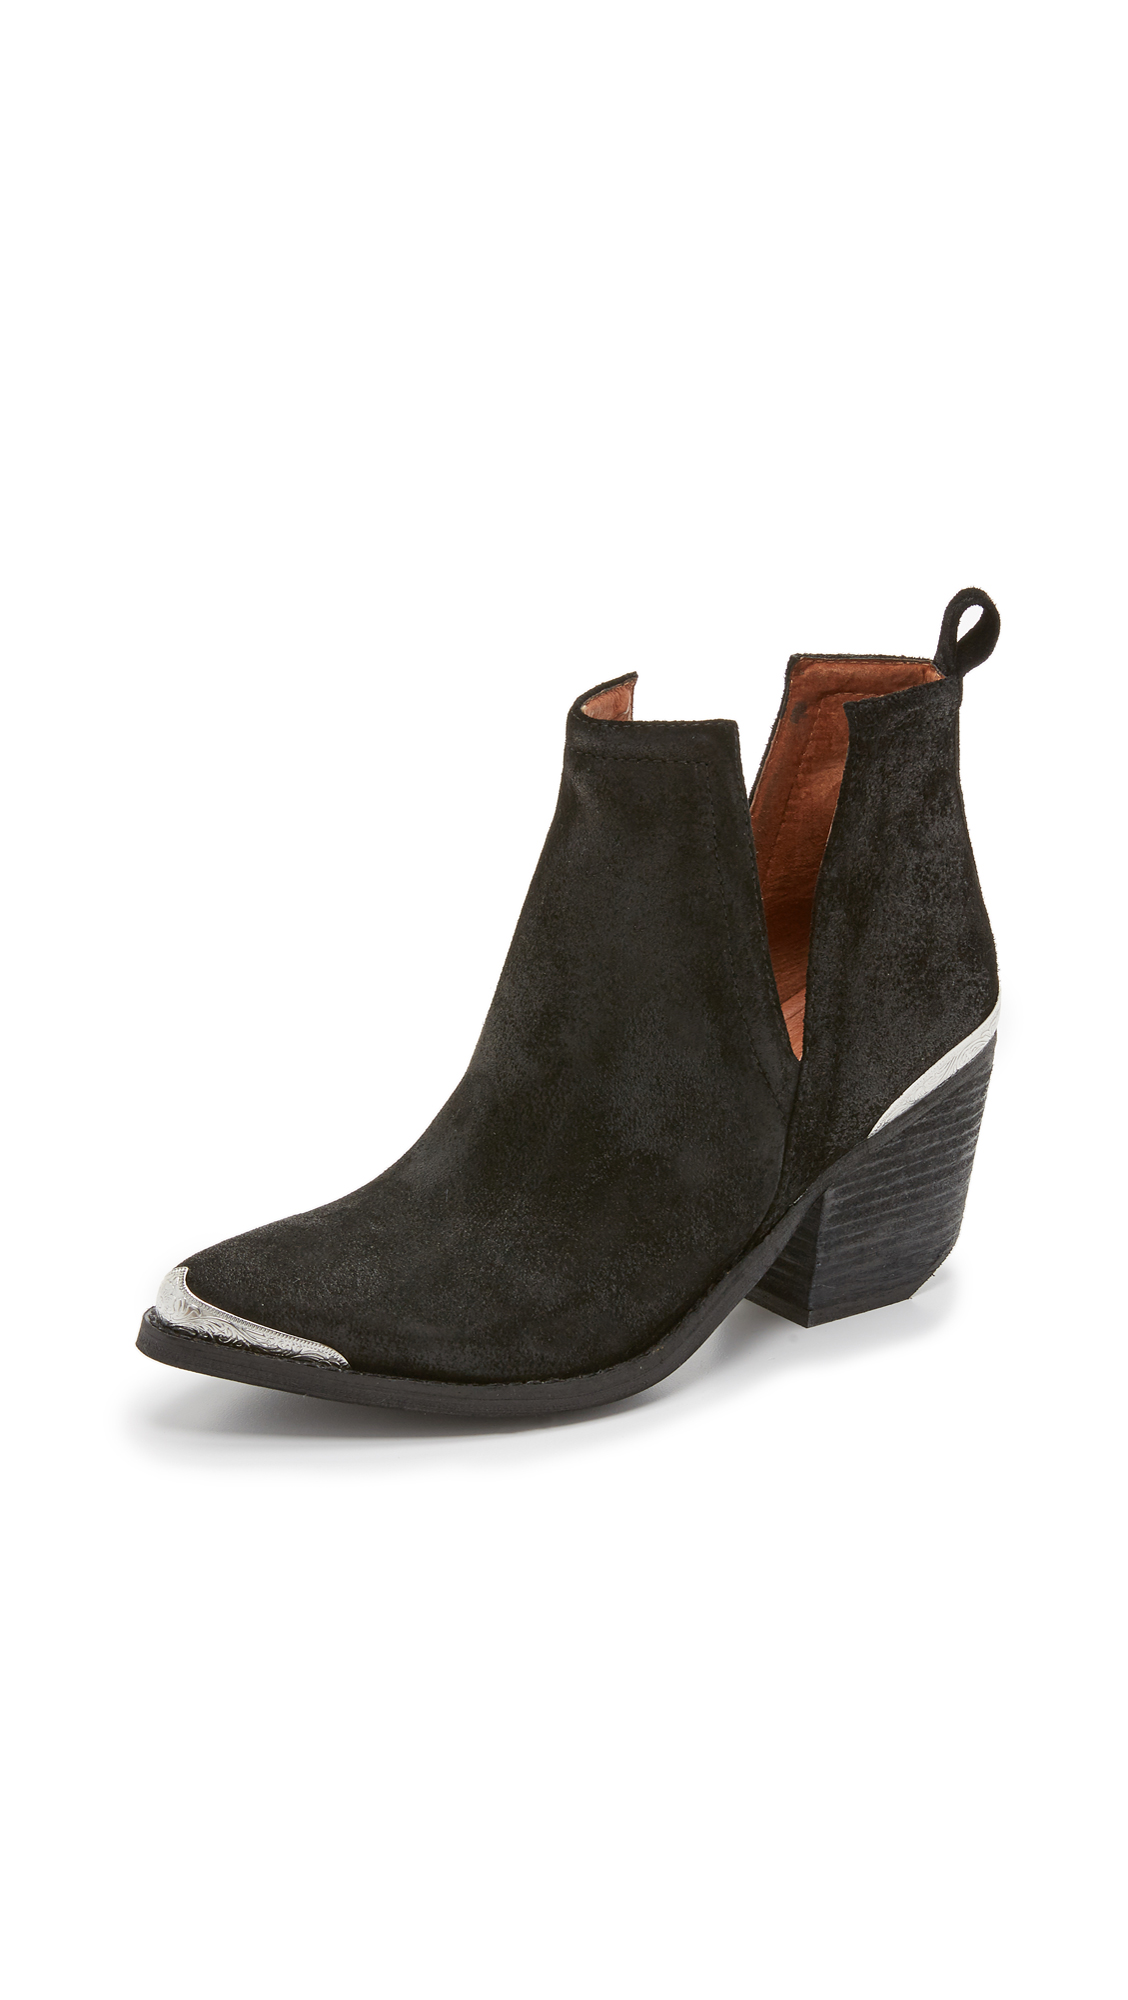 Jeffrey Campbell Cromwell Suede Booties - Black